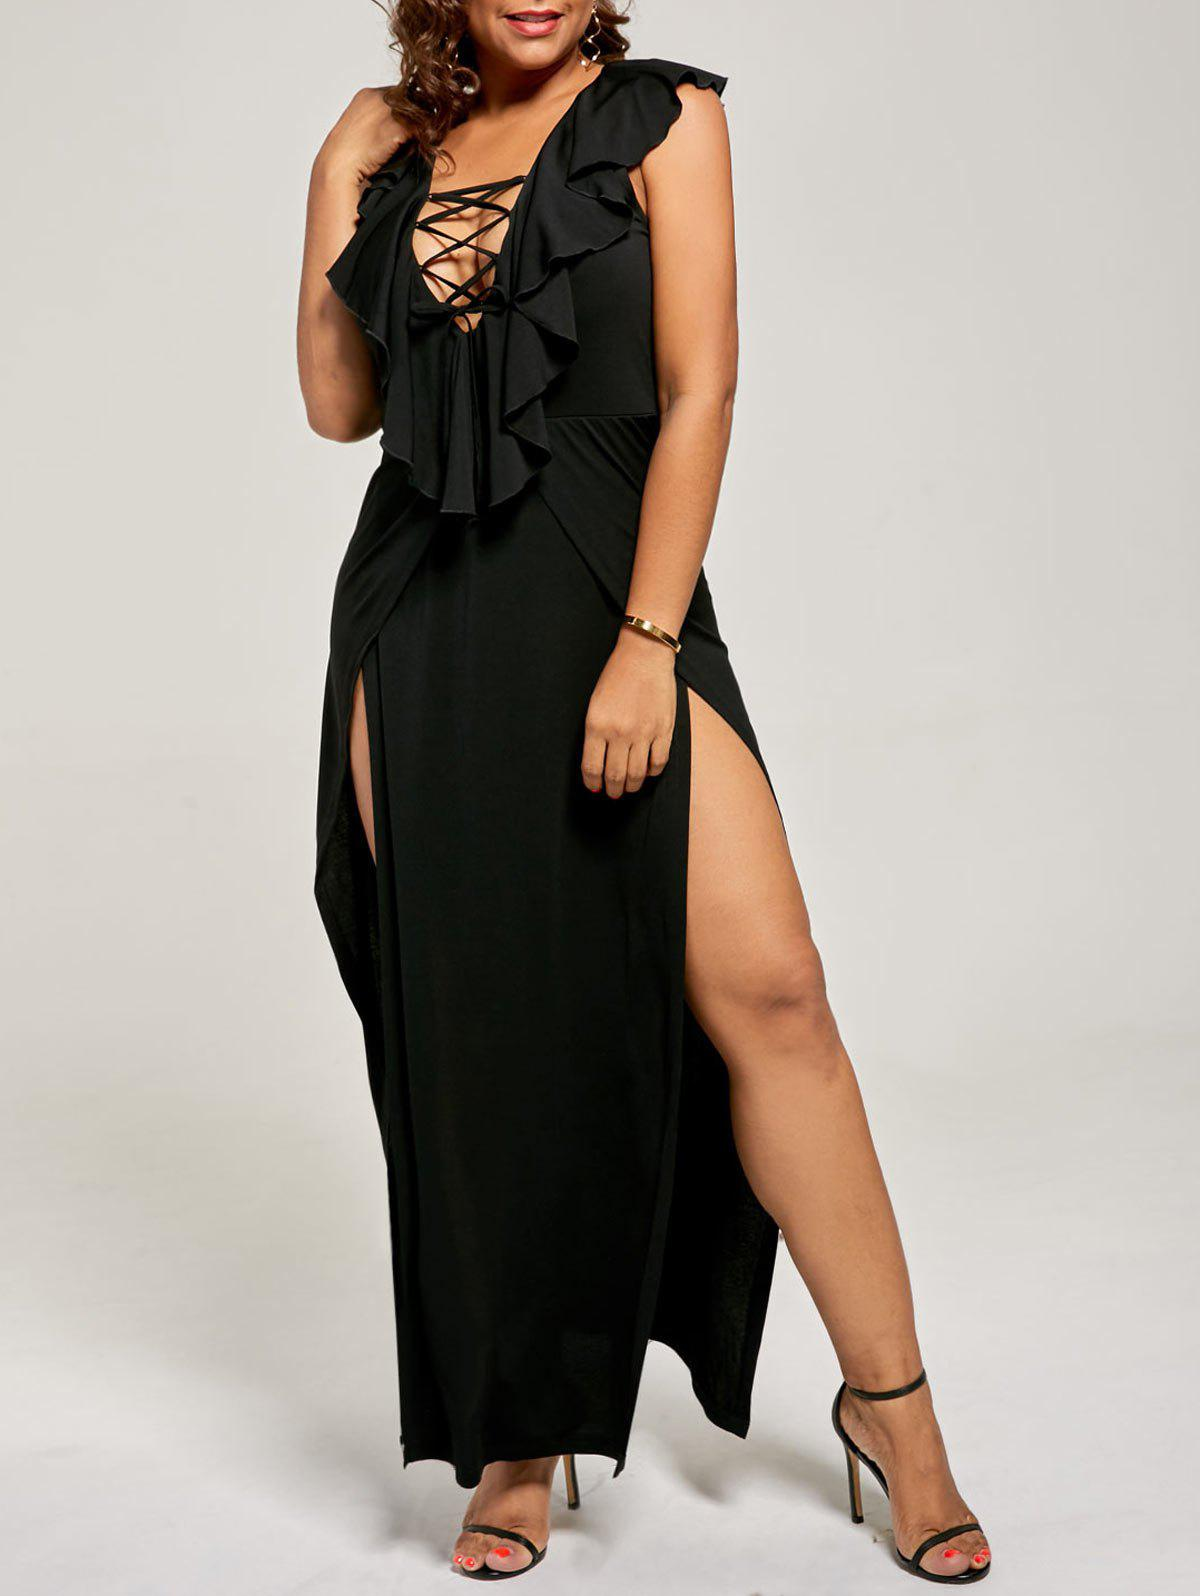 Plus Size Flounce Lace Up Maxi High Slit DressWOMEN<br><br>Size: 3XL; Color: BLACK; Style: Casual; Material: Polyester,Spandex; Silhouette: A-Line; Dresses Length: Floor-Length; Neckline: Plunging Neck; Sleeve Length: Sleeveless; Pattern Type: Solid; With Belt: No; Season: Fall,Spring,Summer; Weight: 0.3500kg; Package Contents: 1 x Dress;